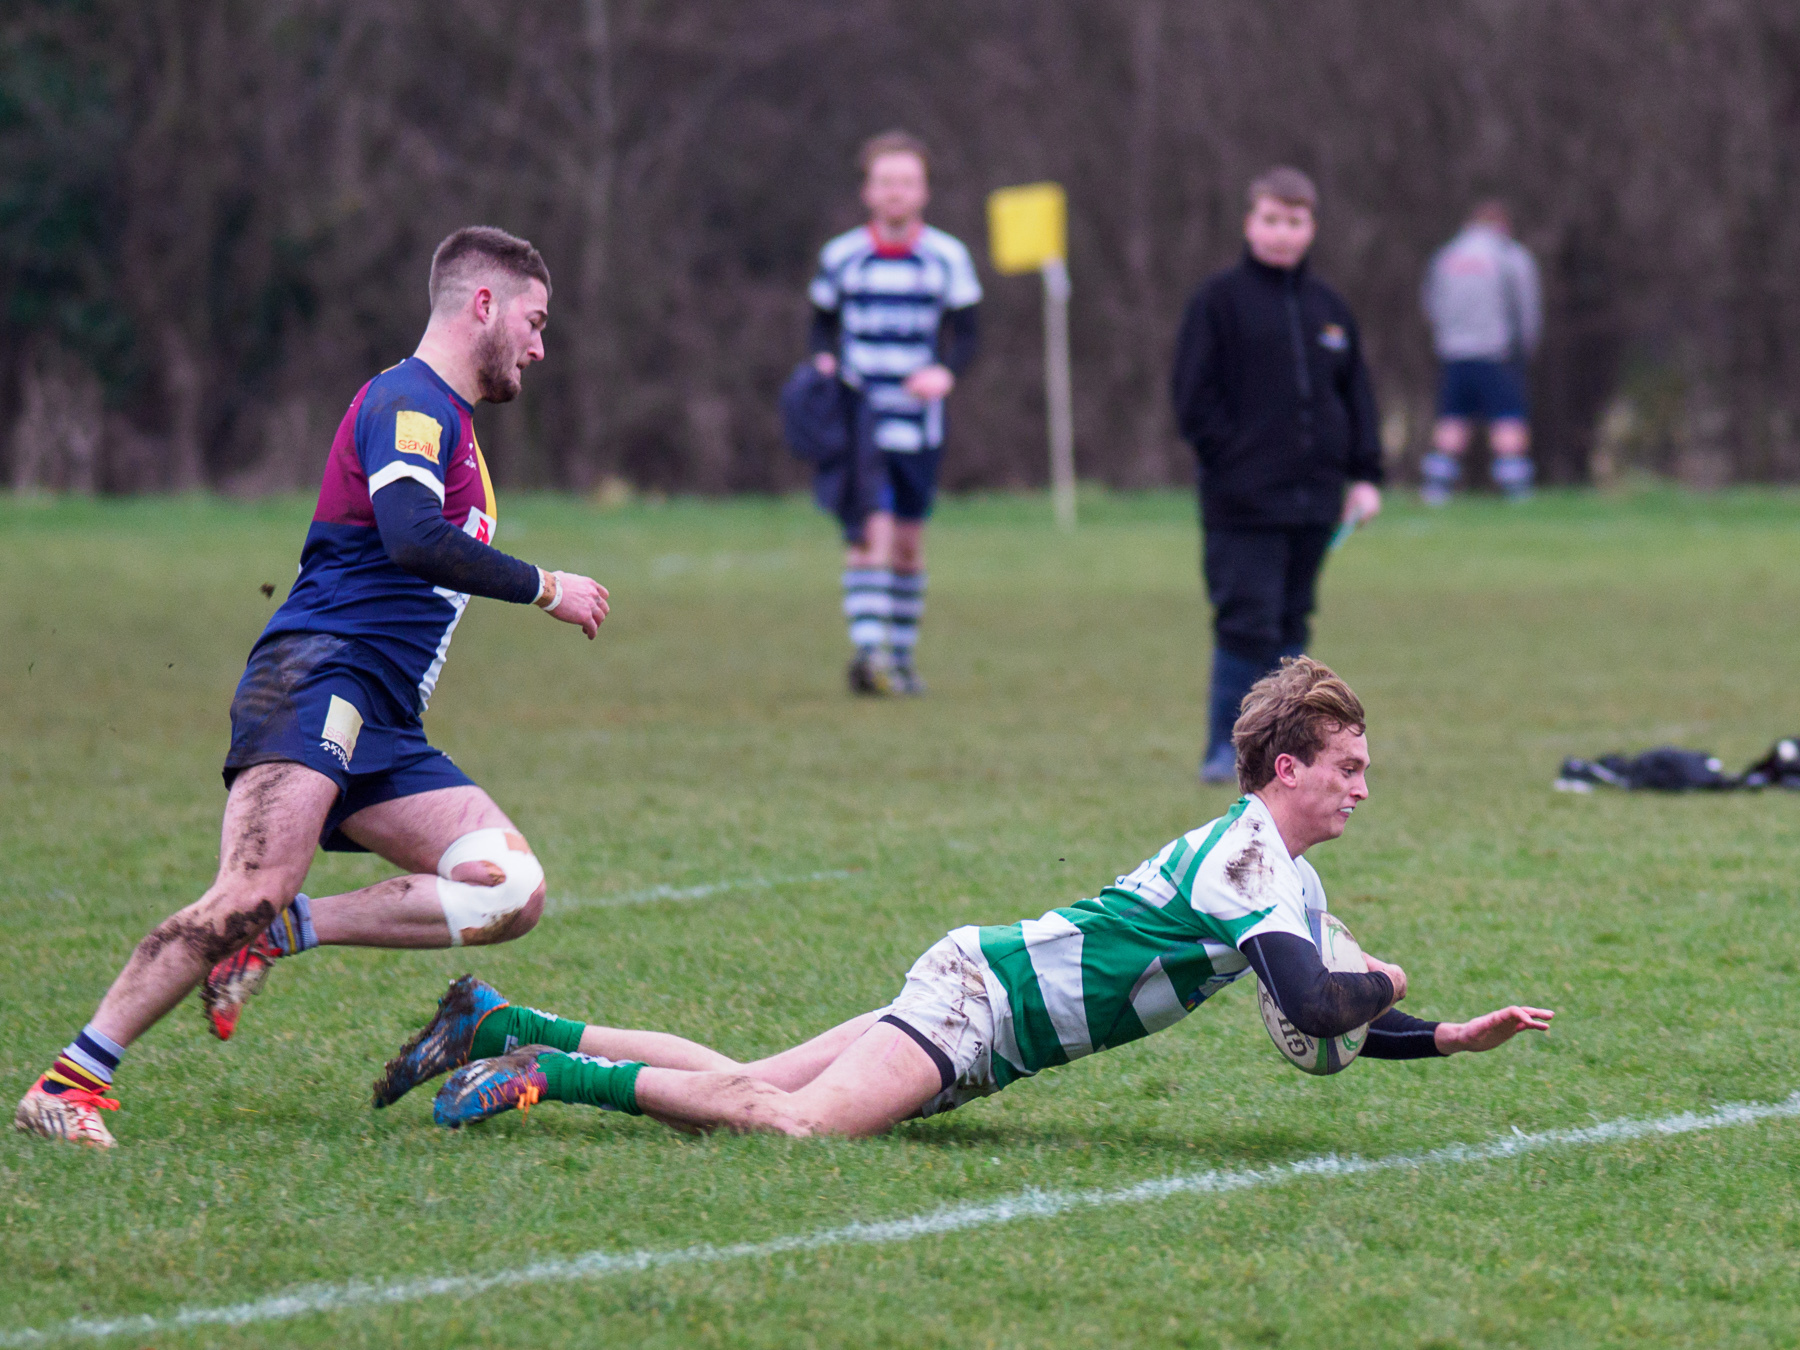 Fly-half Ollie Bowden divers over the line for Salisbury's first try